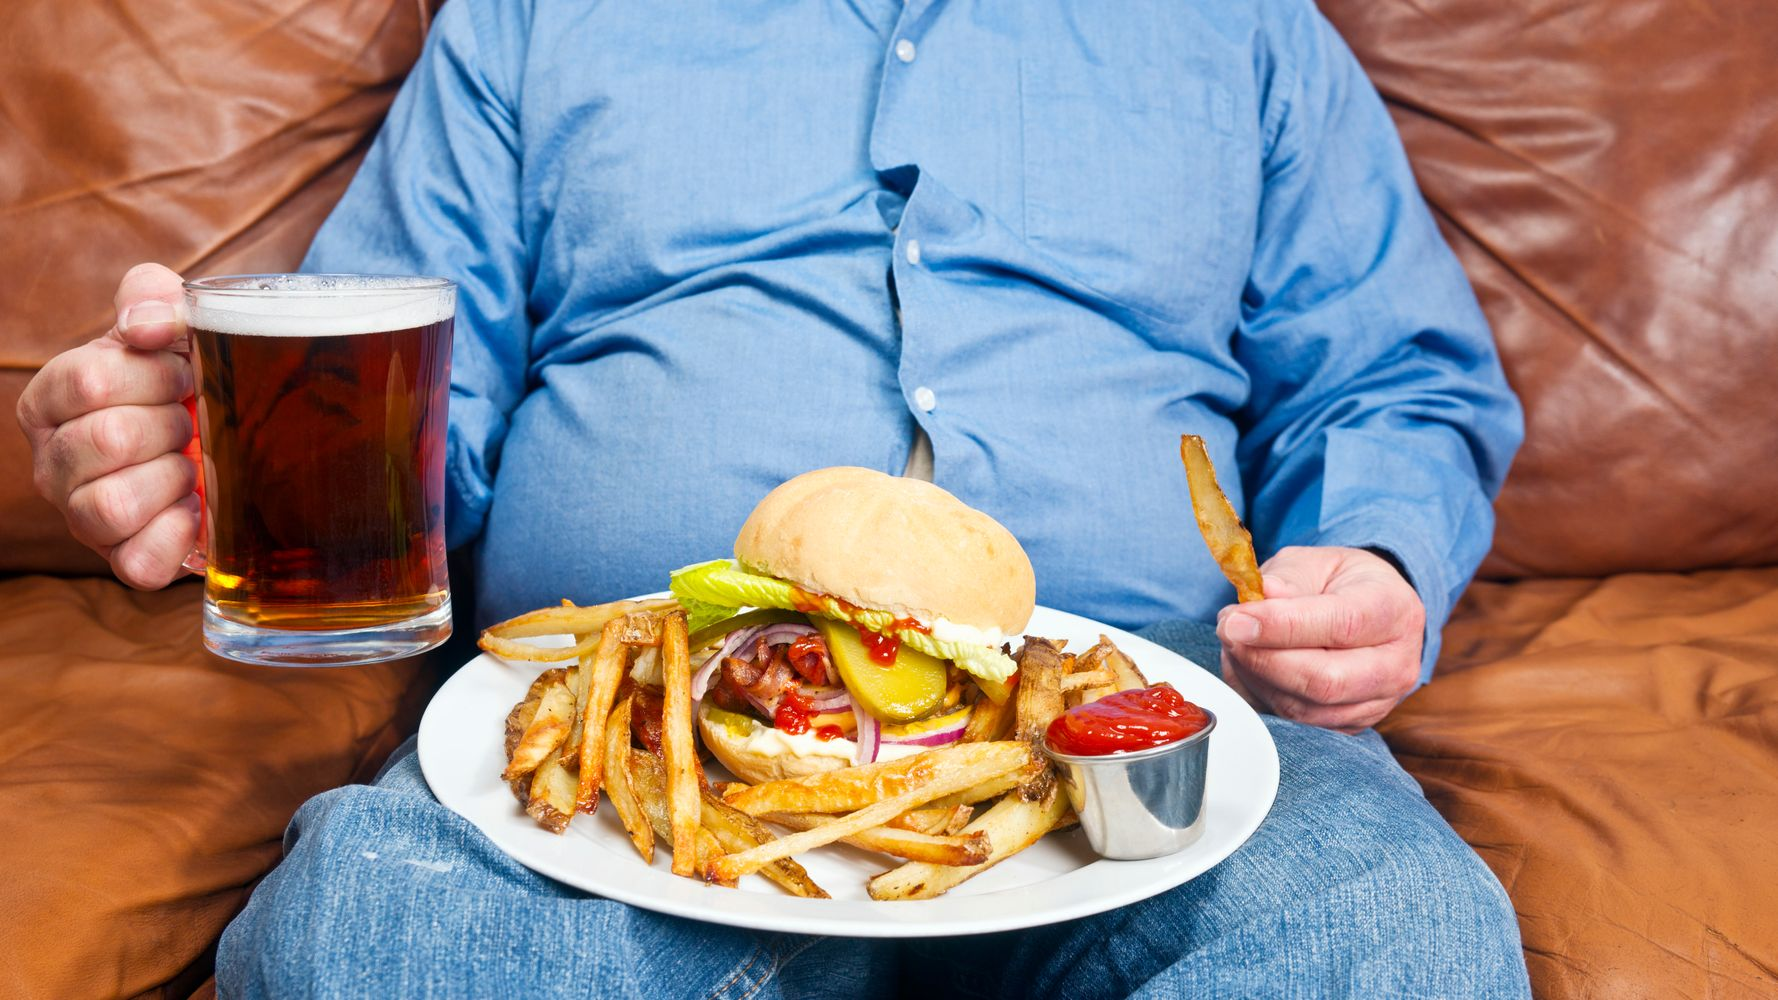 U.S. Hits Record High Obesity Rates